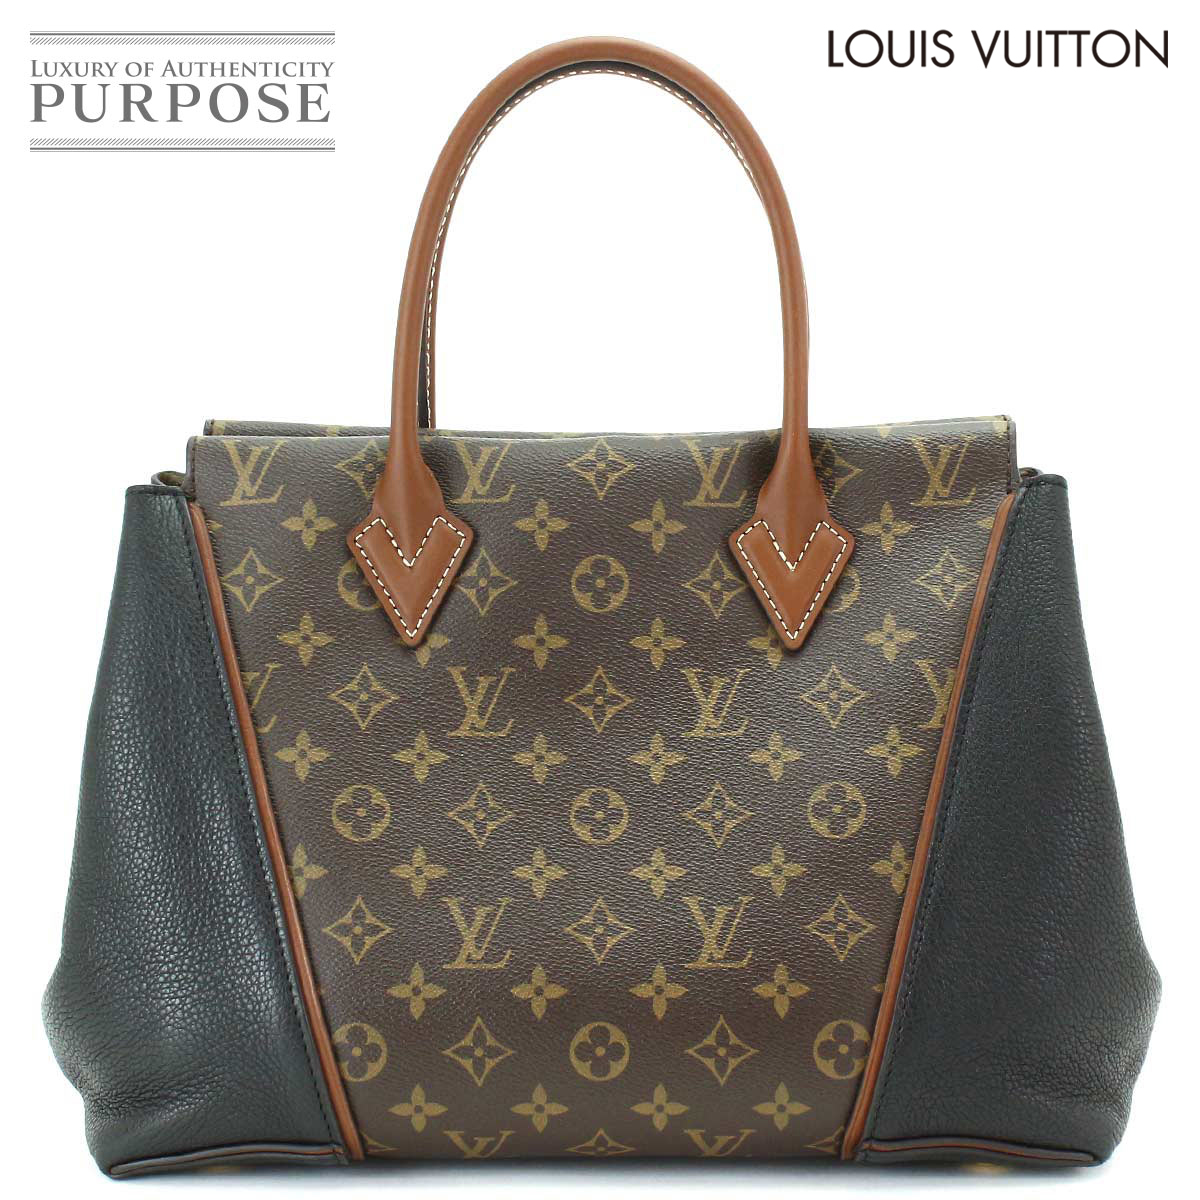 0f4a617517f3 Louis Vuitton LOUIS VUITTON monogram Thoth W PM tote bag leather brown  black M40942  used  brand